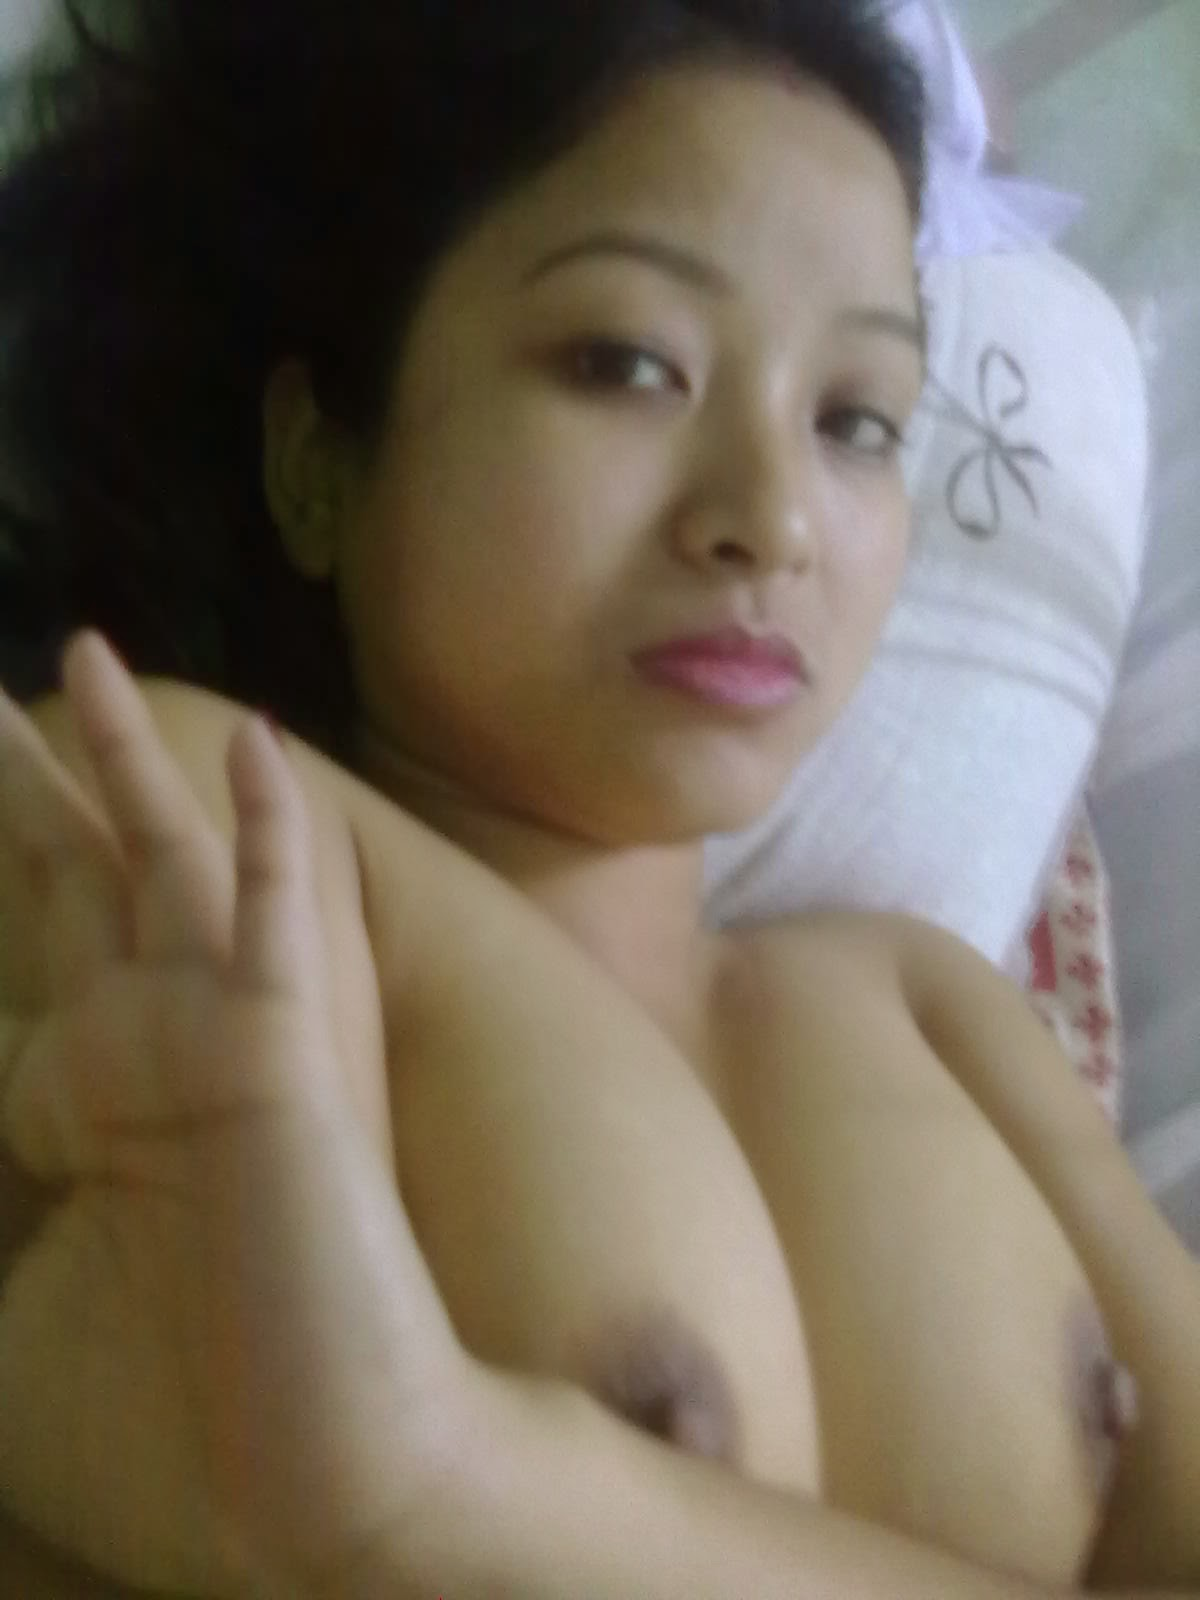 assamese girls screaming porn videos